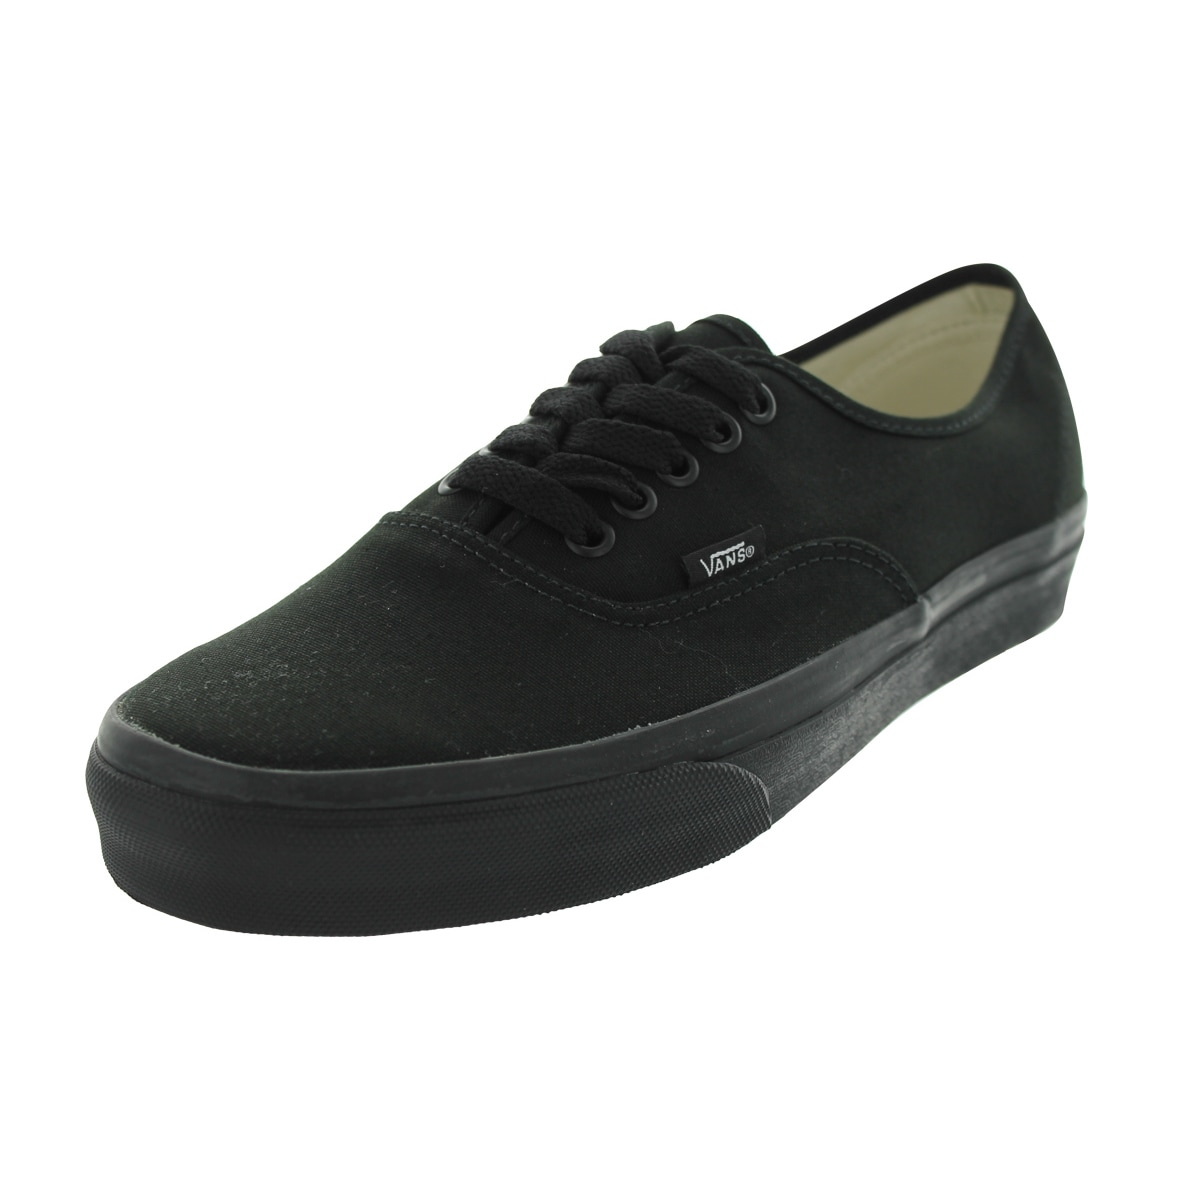 44ee8cc2a2947 Shop Vans Authentic Black Canvas Skate Shoes - Free Shipping Today ...